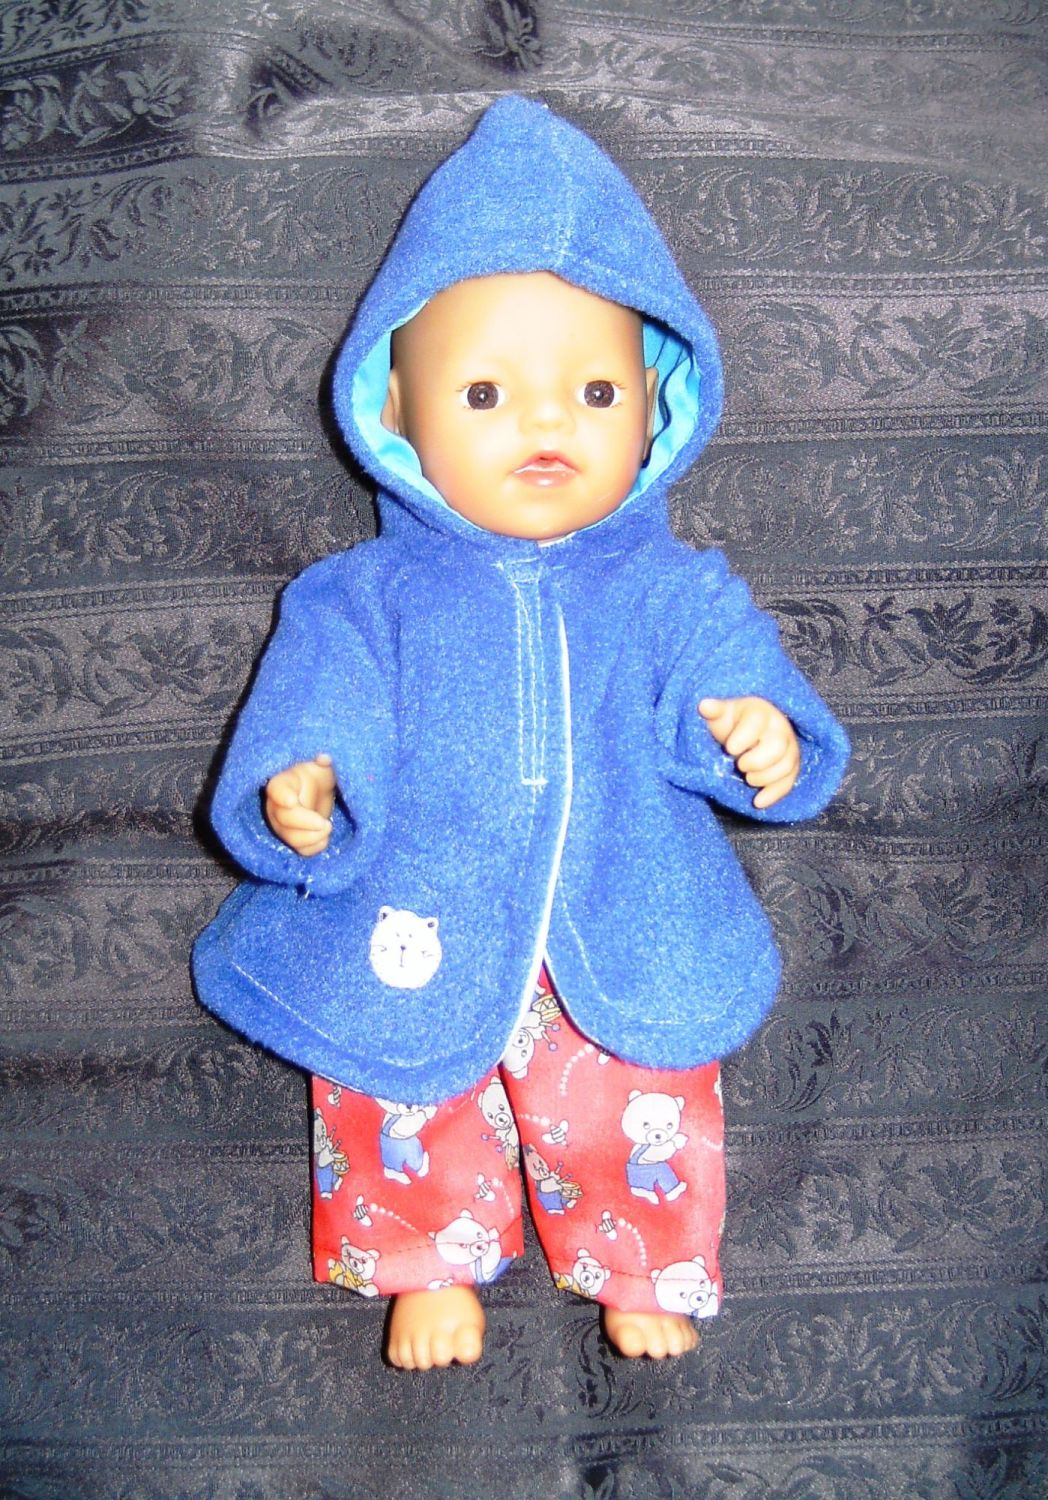 Doll's bathrobe to fit 12 inch baby boy doll